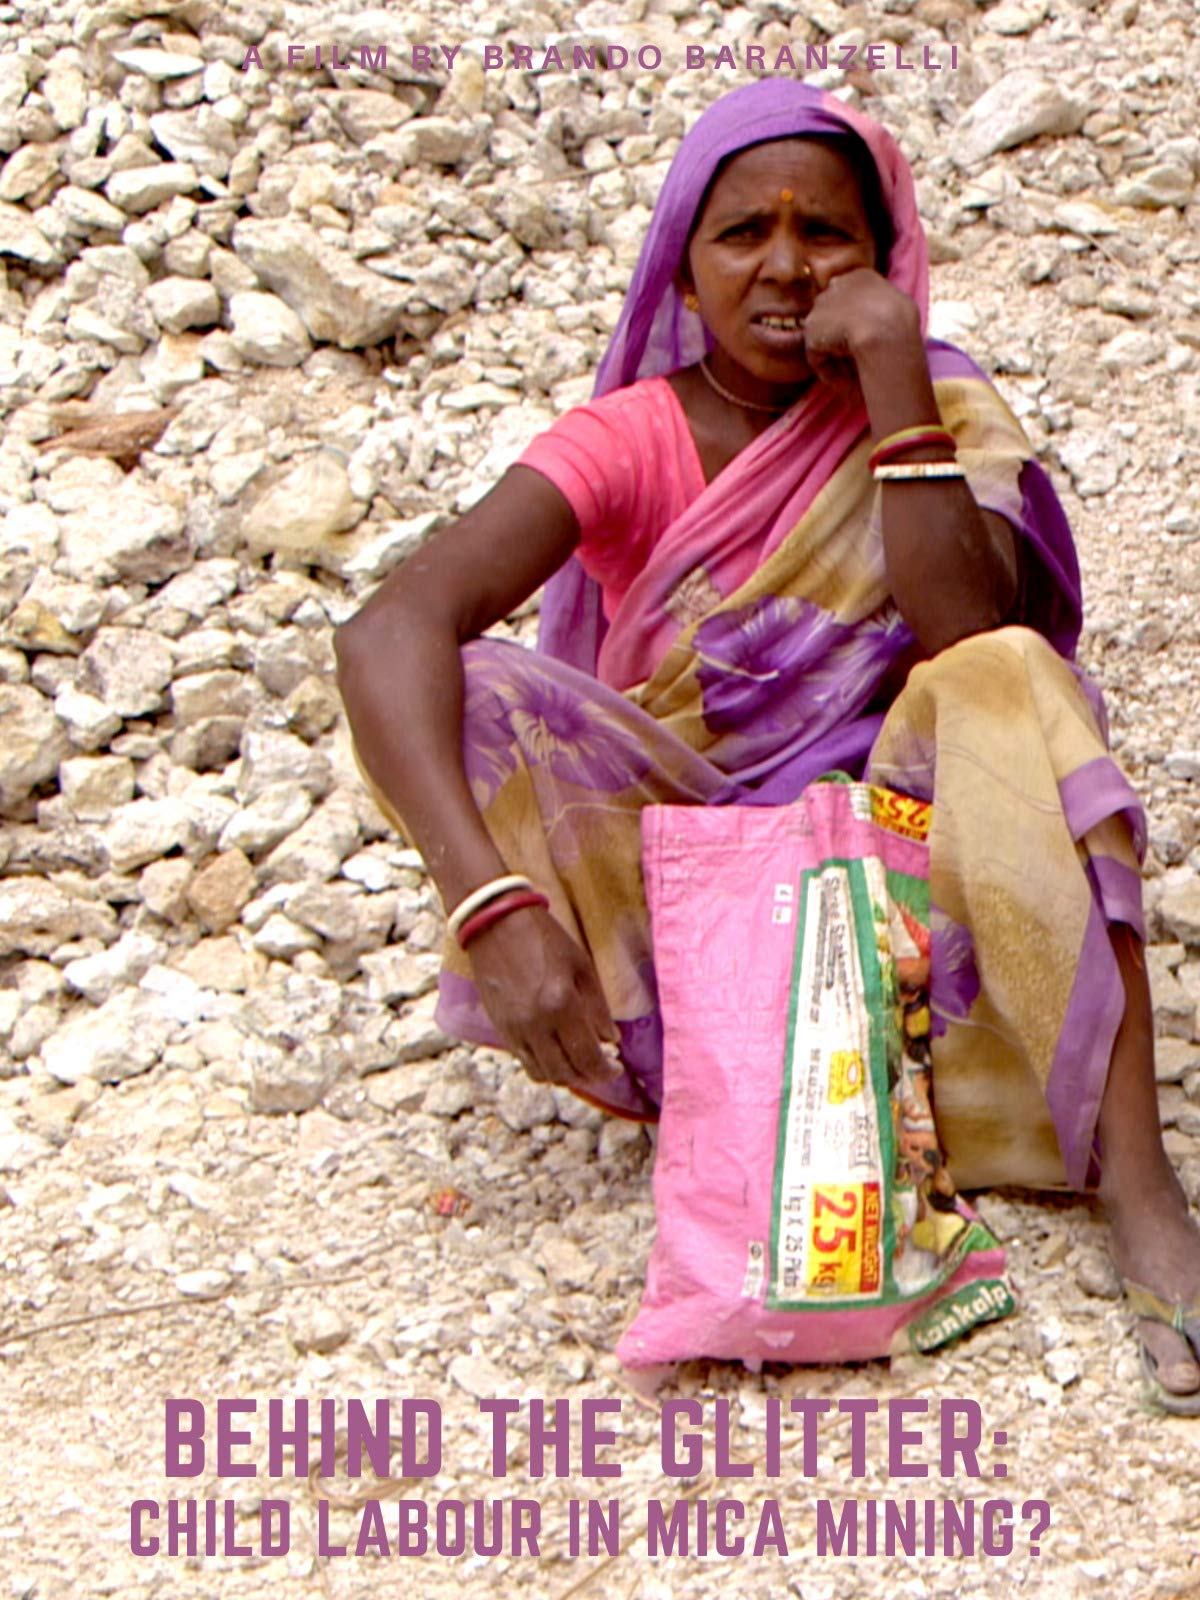 Behind the Glitter: Child Labour in Mica Mining